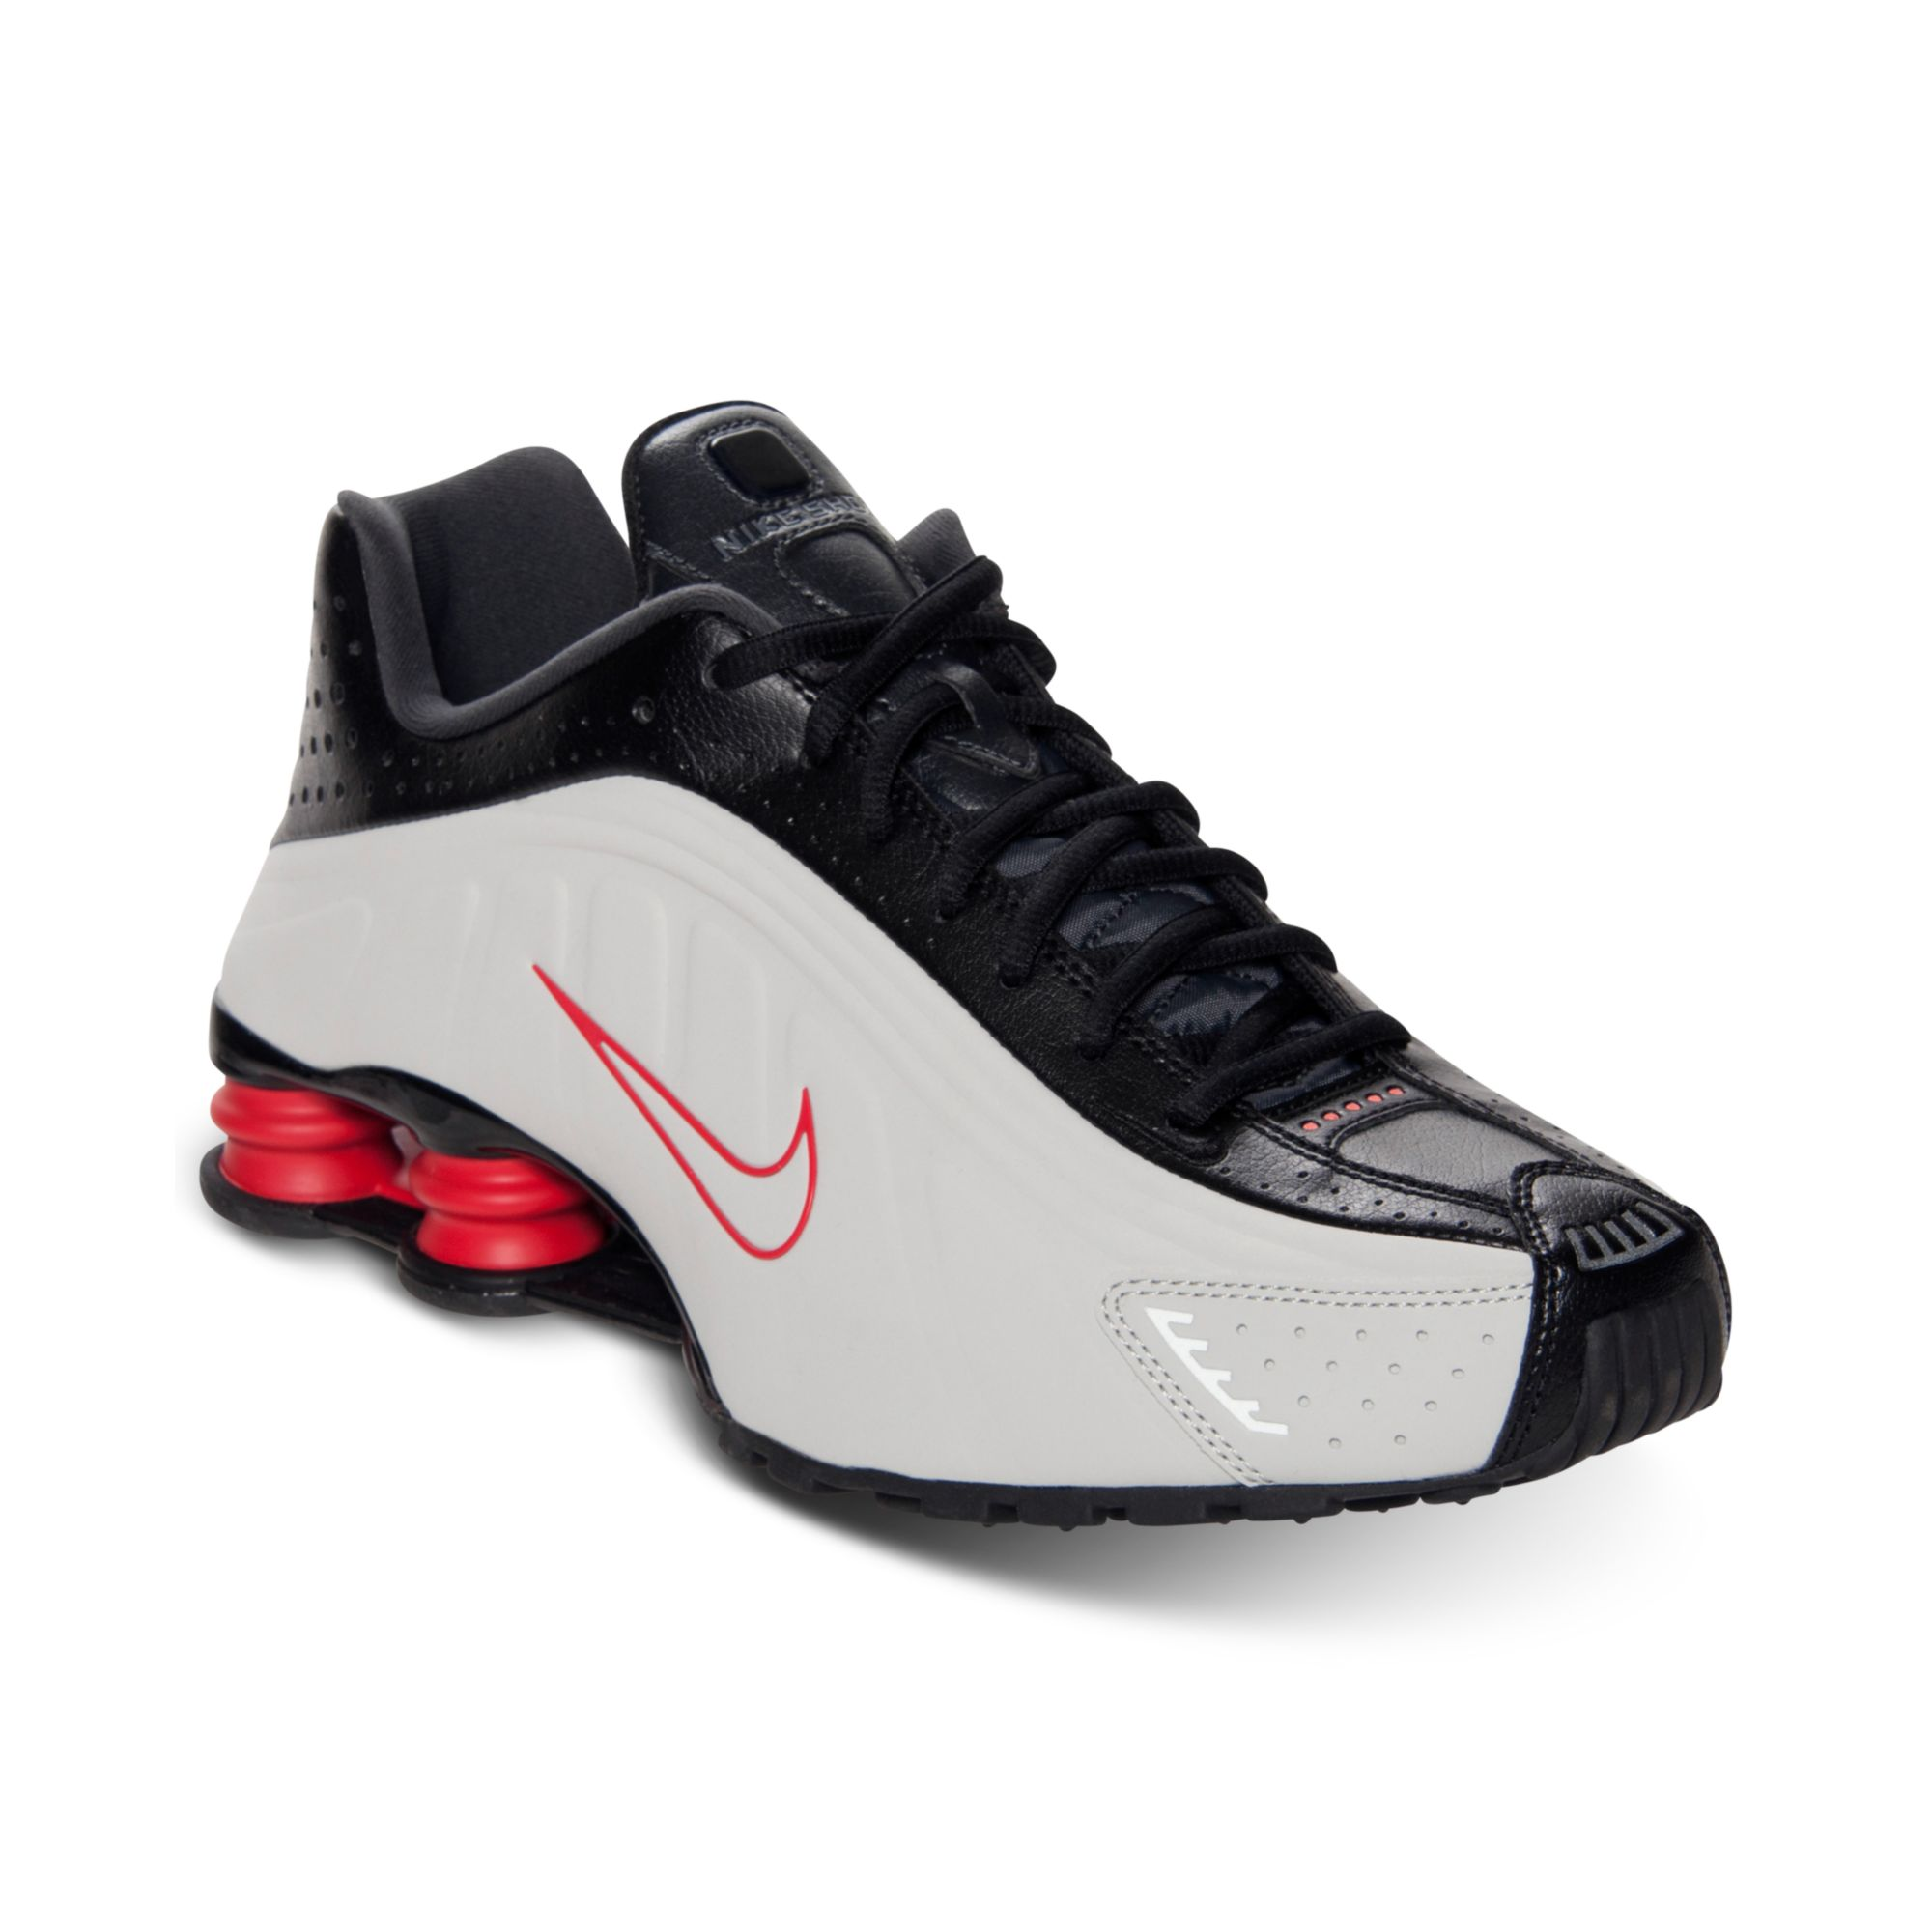 Mens Black Shox Running For Shoes Line From In Lyst Nike Men R4 Finish LqSpUzGMV